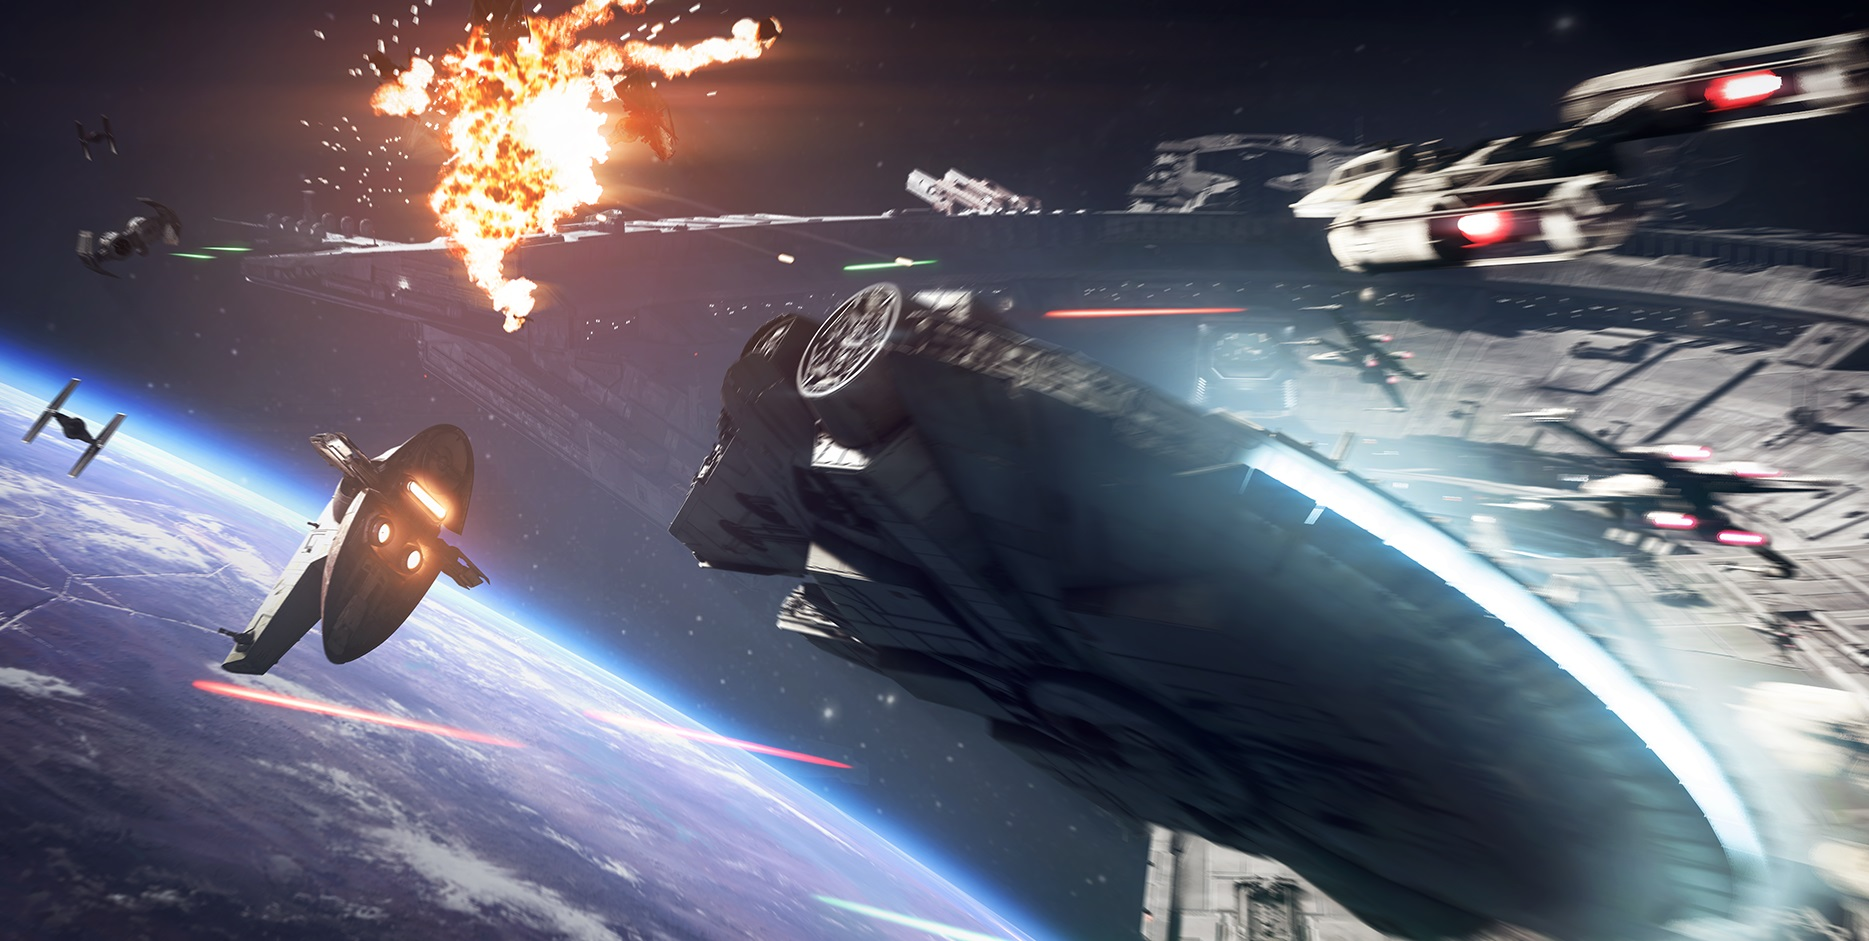 Star Wars Battlefront 2 player puts the game's new loot boxes to the test